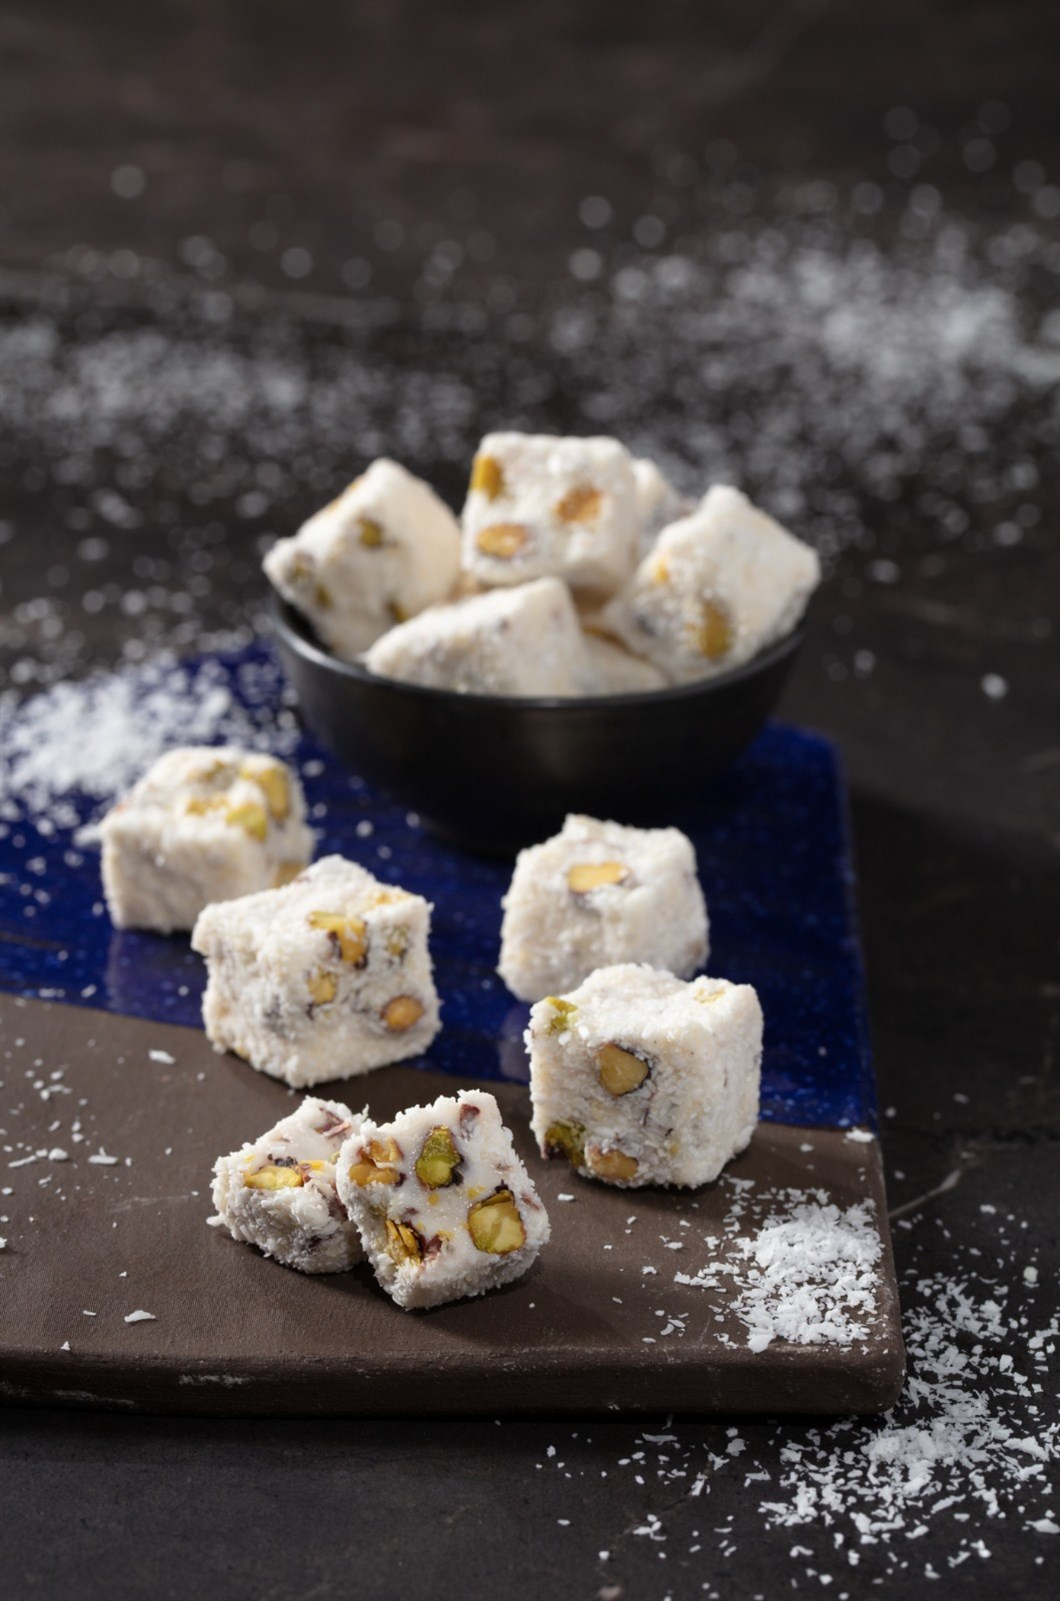 COCONUT COVEREDDOUBLE SULTAN DELIGHT WITH PISTACHIO COVERED COCONUTS KG